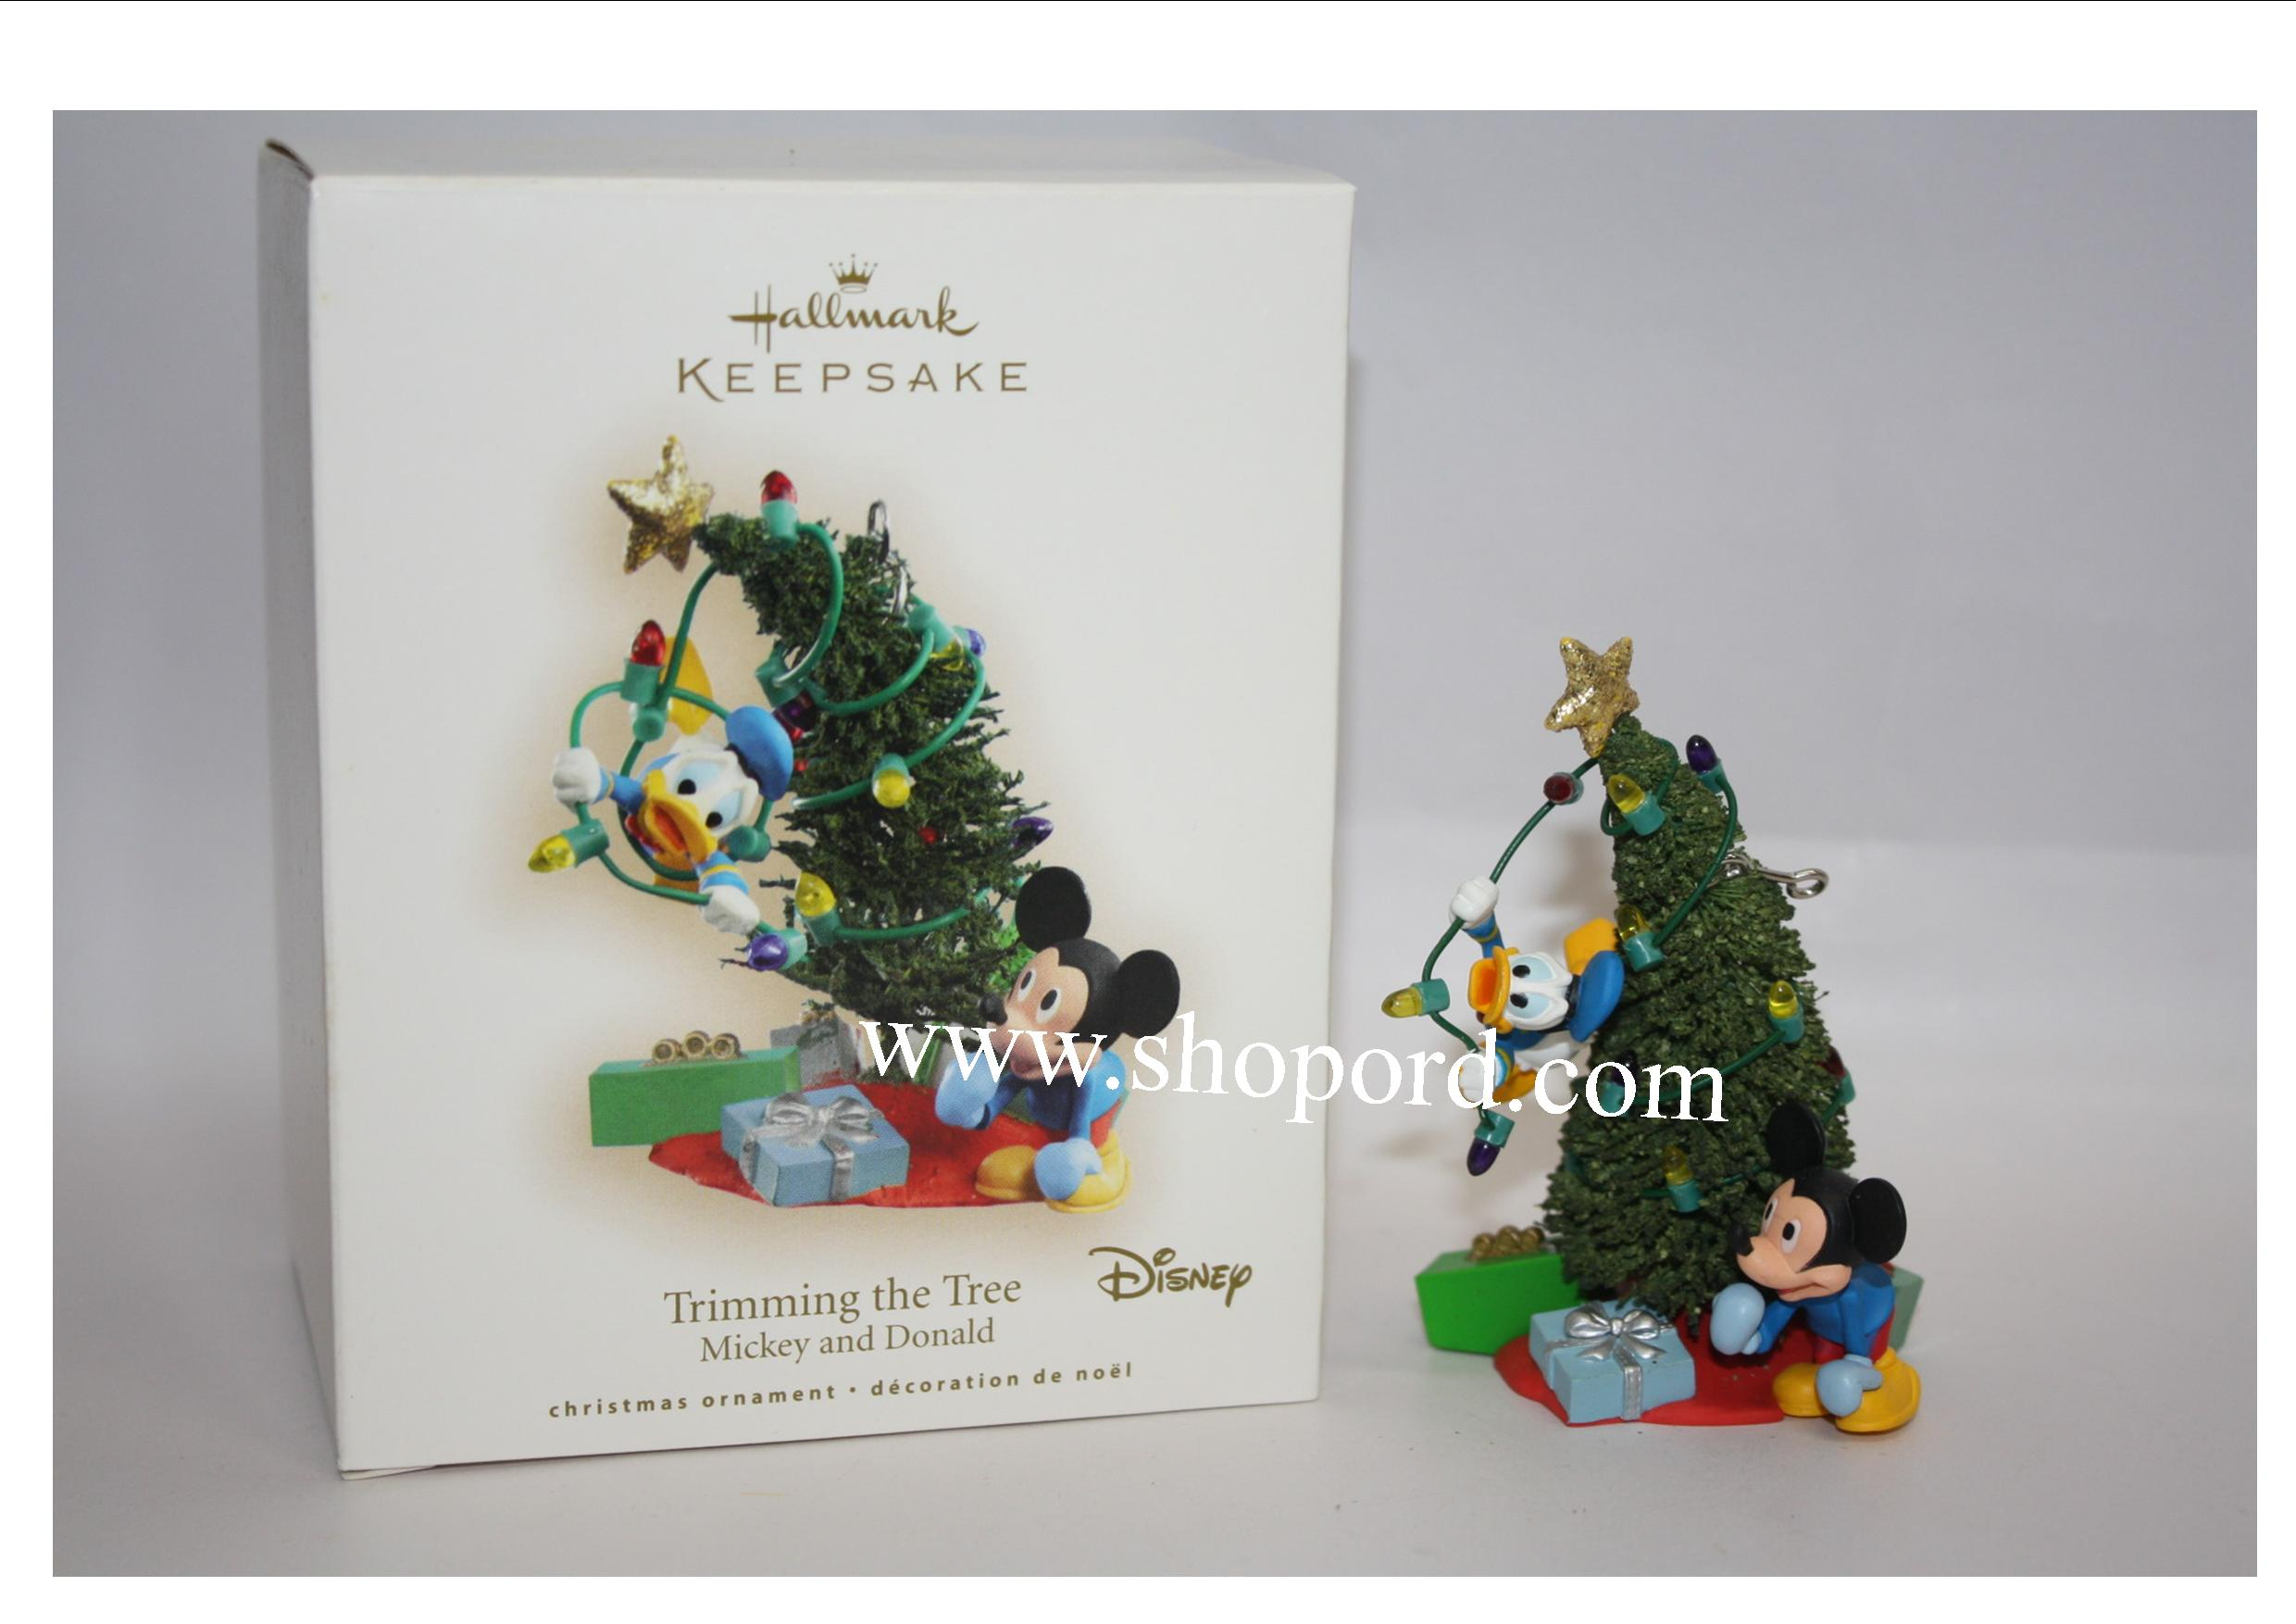 Hallmark 2007 Trimming the Tree Disney Mickey and Donald Ornament QXD4219